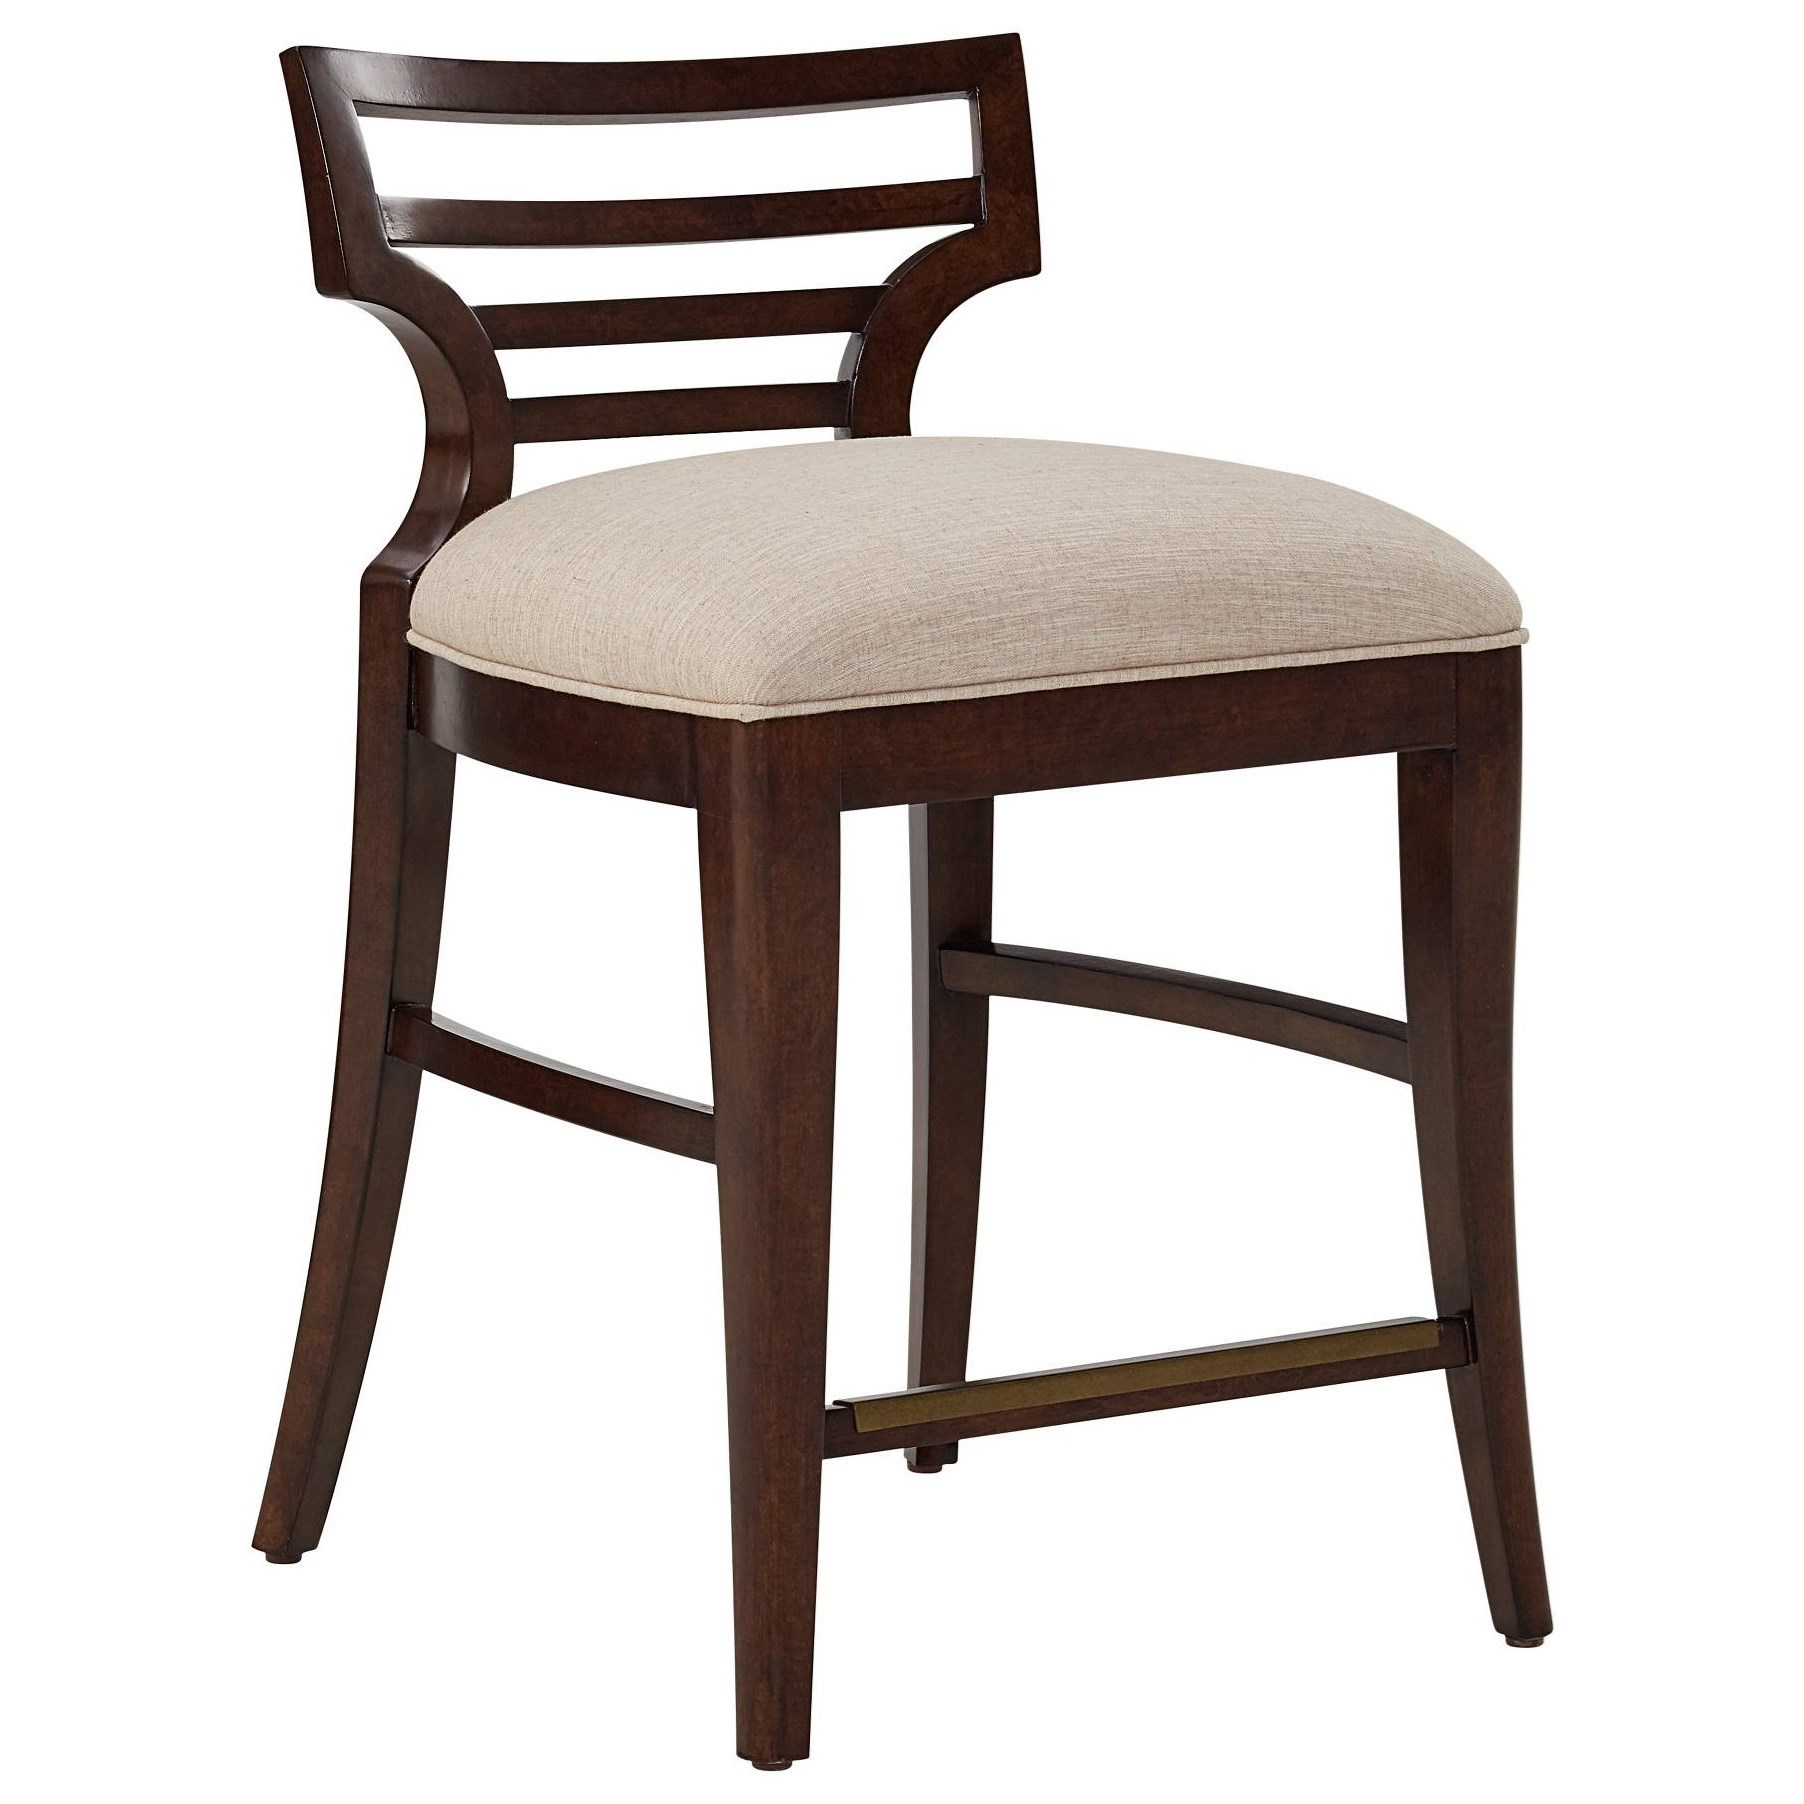 Stanley furniture virage counter stool with upholstered seat becker furniture world bar stools - Furniture wereld counter ...